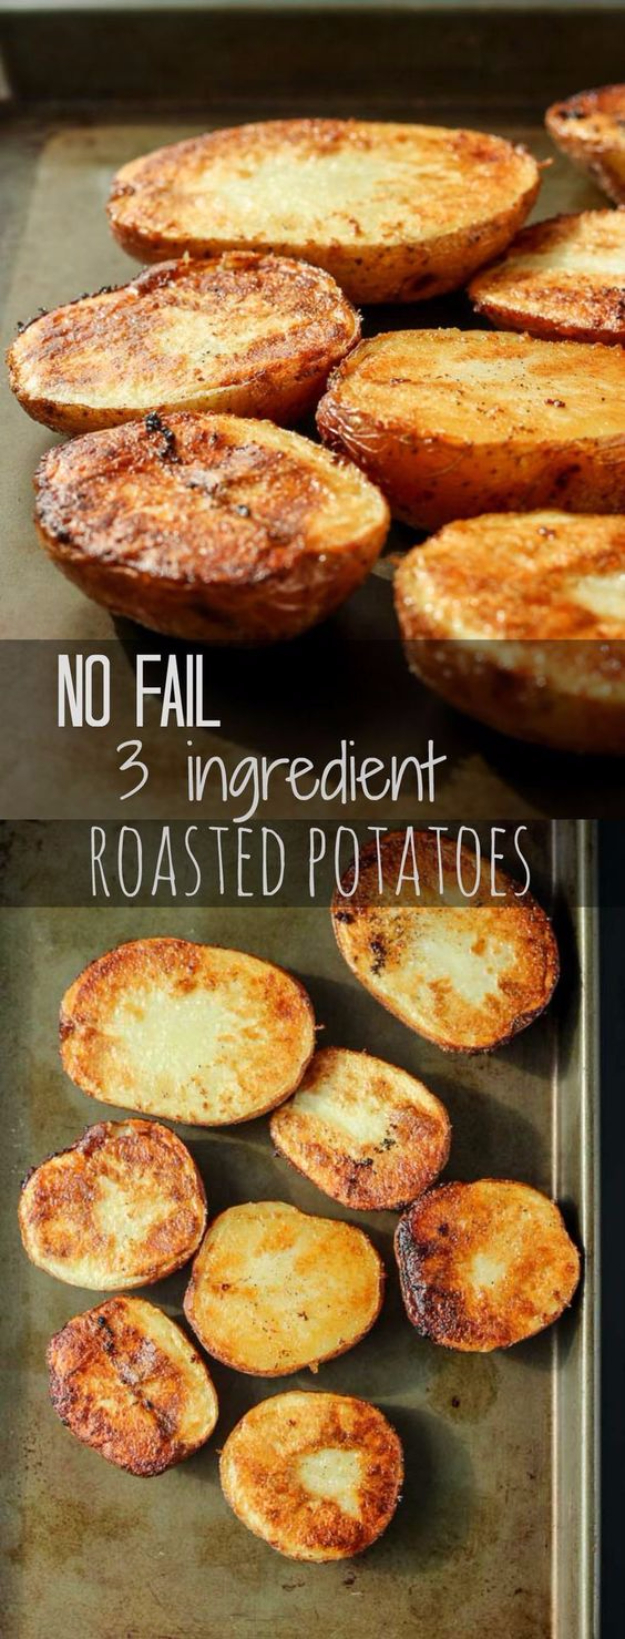 33 Easy Three Ingredient Recipes - No Fail 3 Ingredient Roasted Potatoes - Quick And Healthy 3 Ingredients Recipe Ideas for Breakfast, Lunch, Dinner, Appetizers, Snacks and Desserts - Cookies, Chicken, Crockpot Ideas, Baking and Microwave Recipes and Tutorials #easyrecipes #quickrecipes